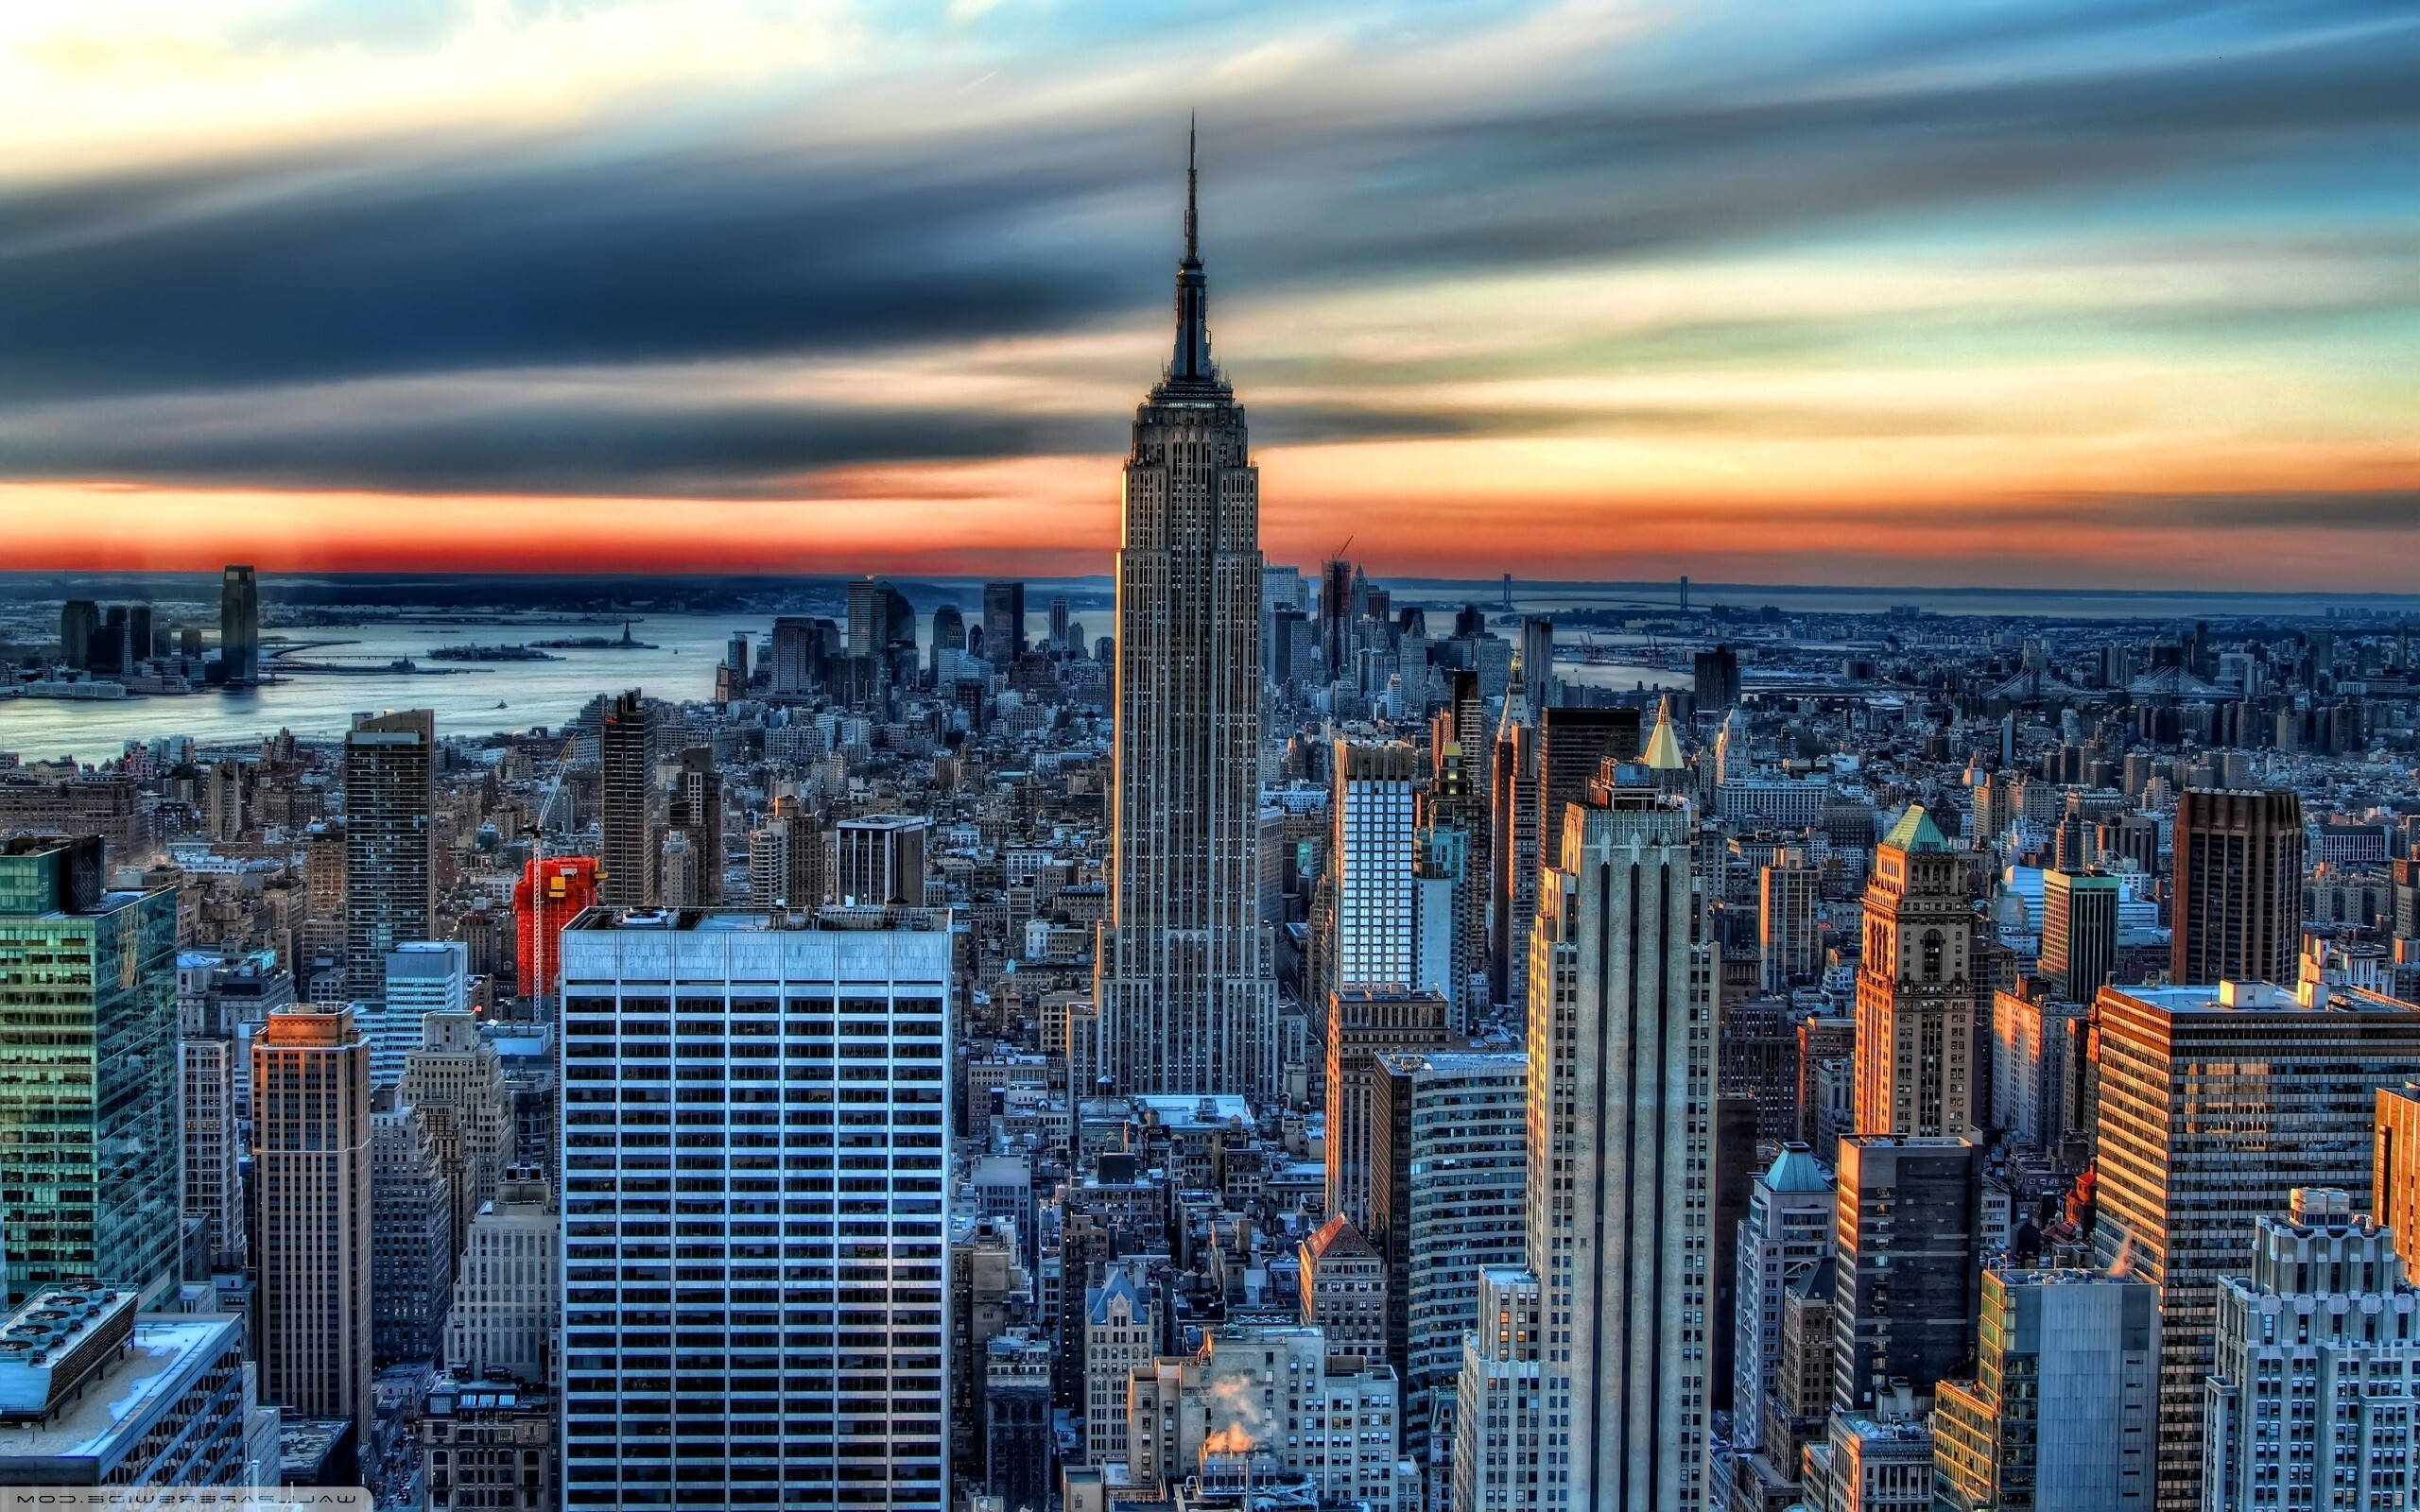 Empire State Building Skyscraper In New York City Usa Hd Wallpaper